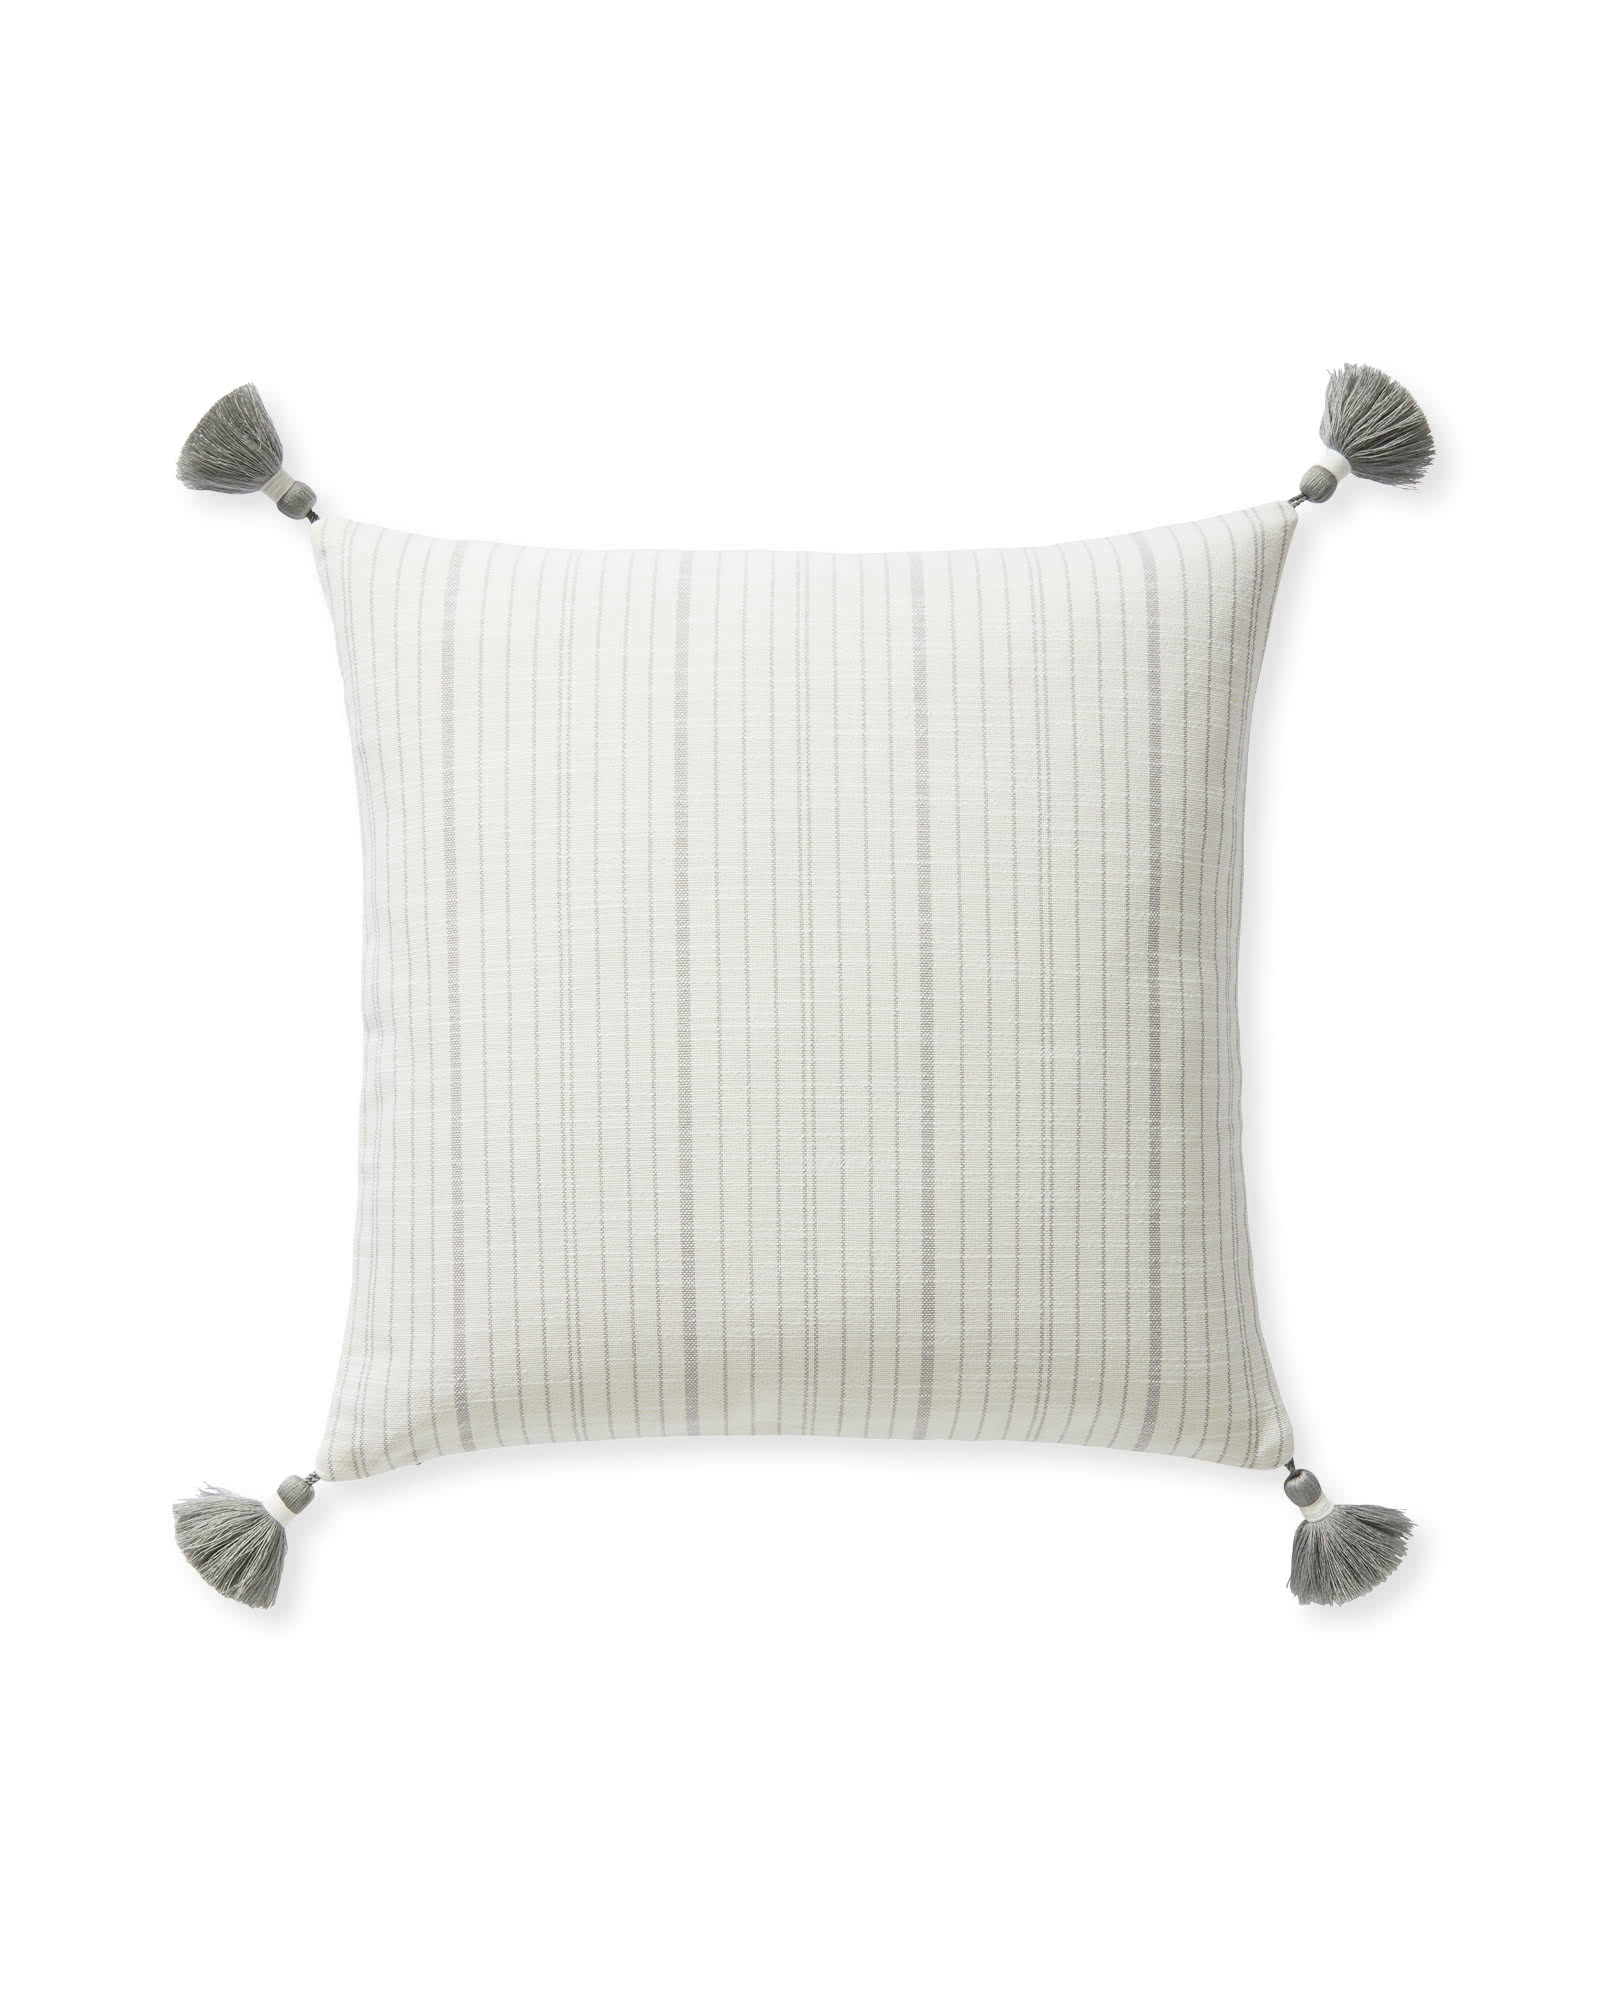 Surf Stripe Outdoor Pillow Cover, Smoke